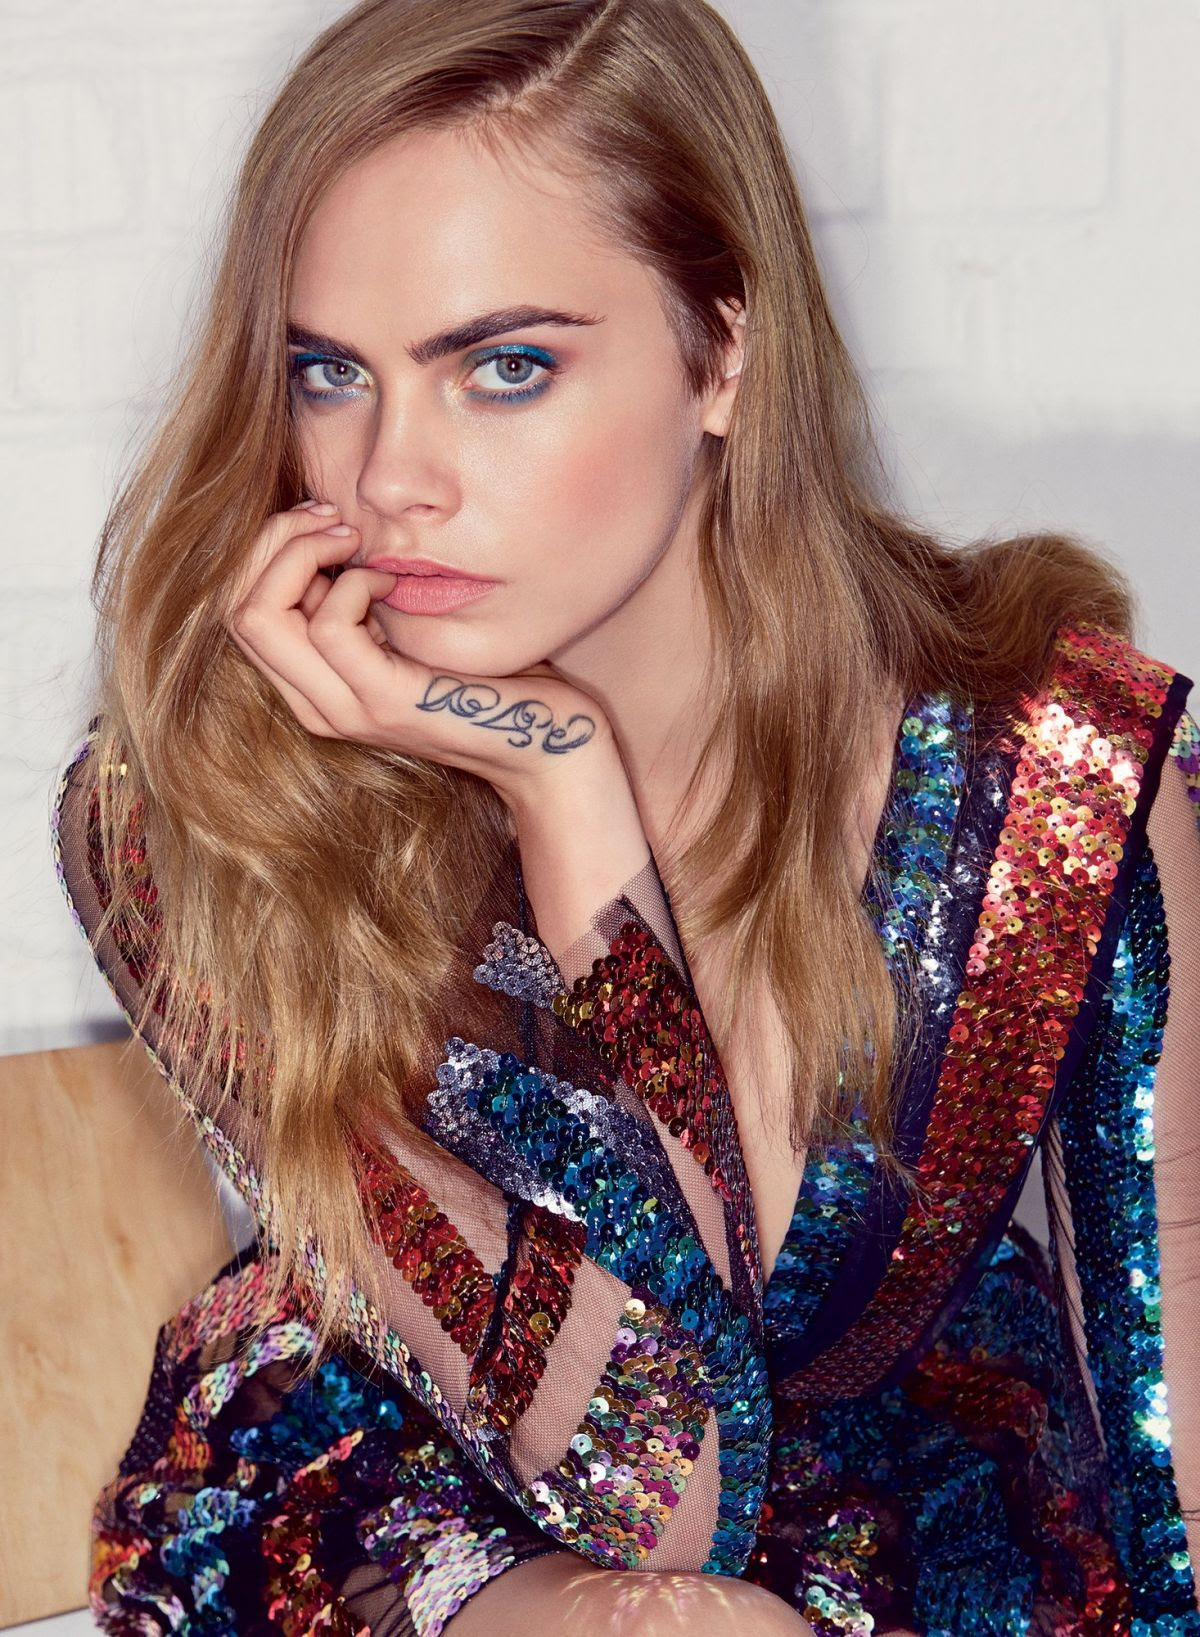 CARA DELEVINGNE by Patrick Demarchelier for Vogue Magazine, July 2015